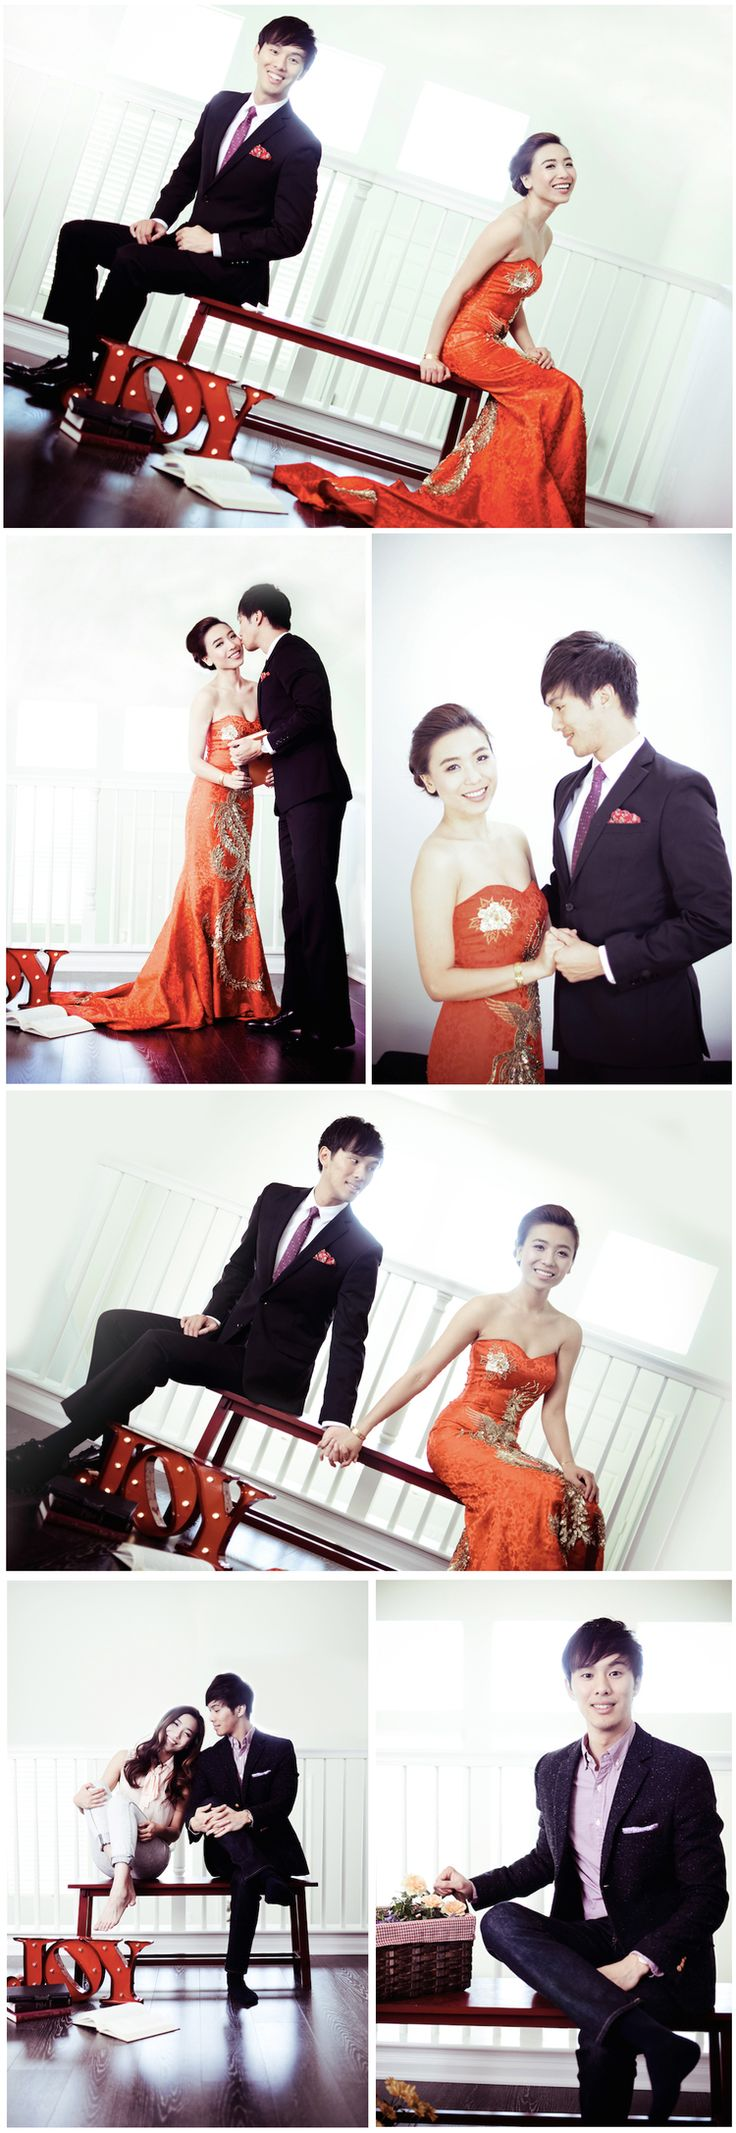 Beautiful pre-wedding engagement shoot with a modern interpretation of the traditional Chinese qipao dress.